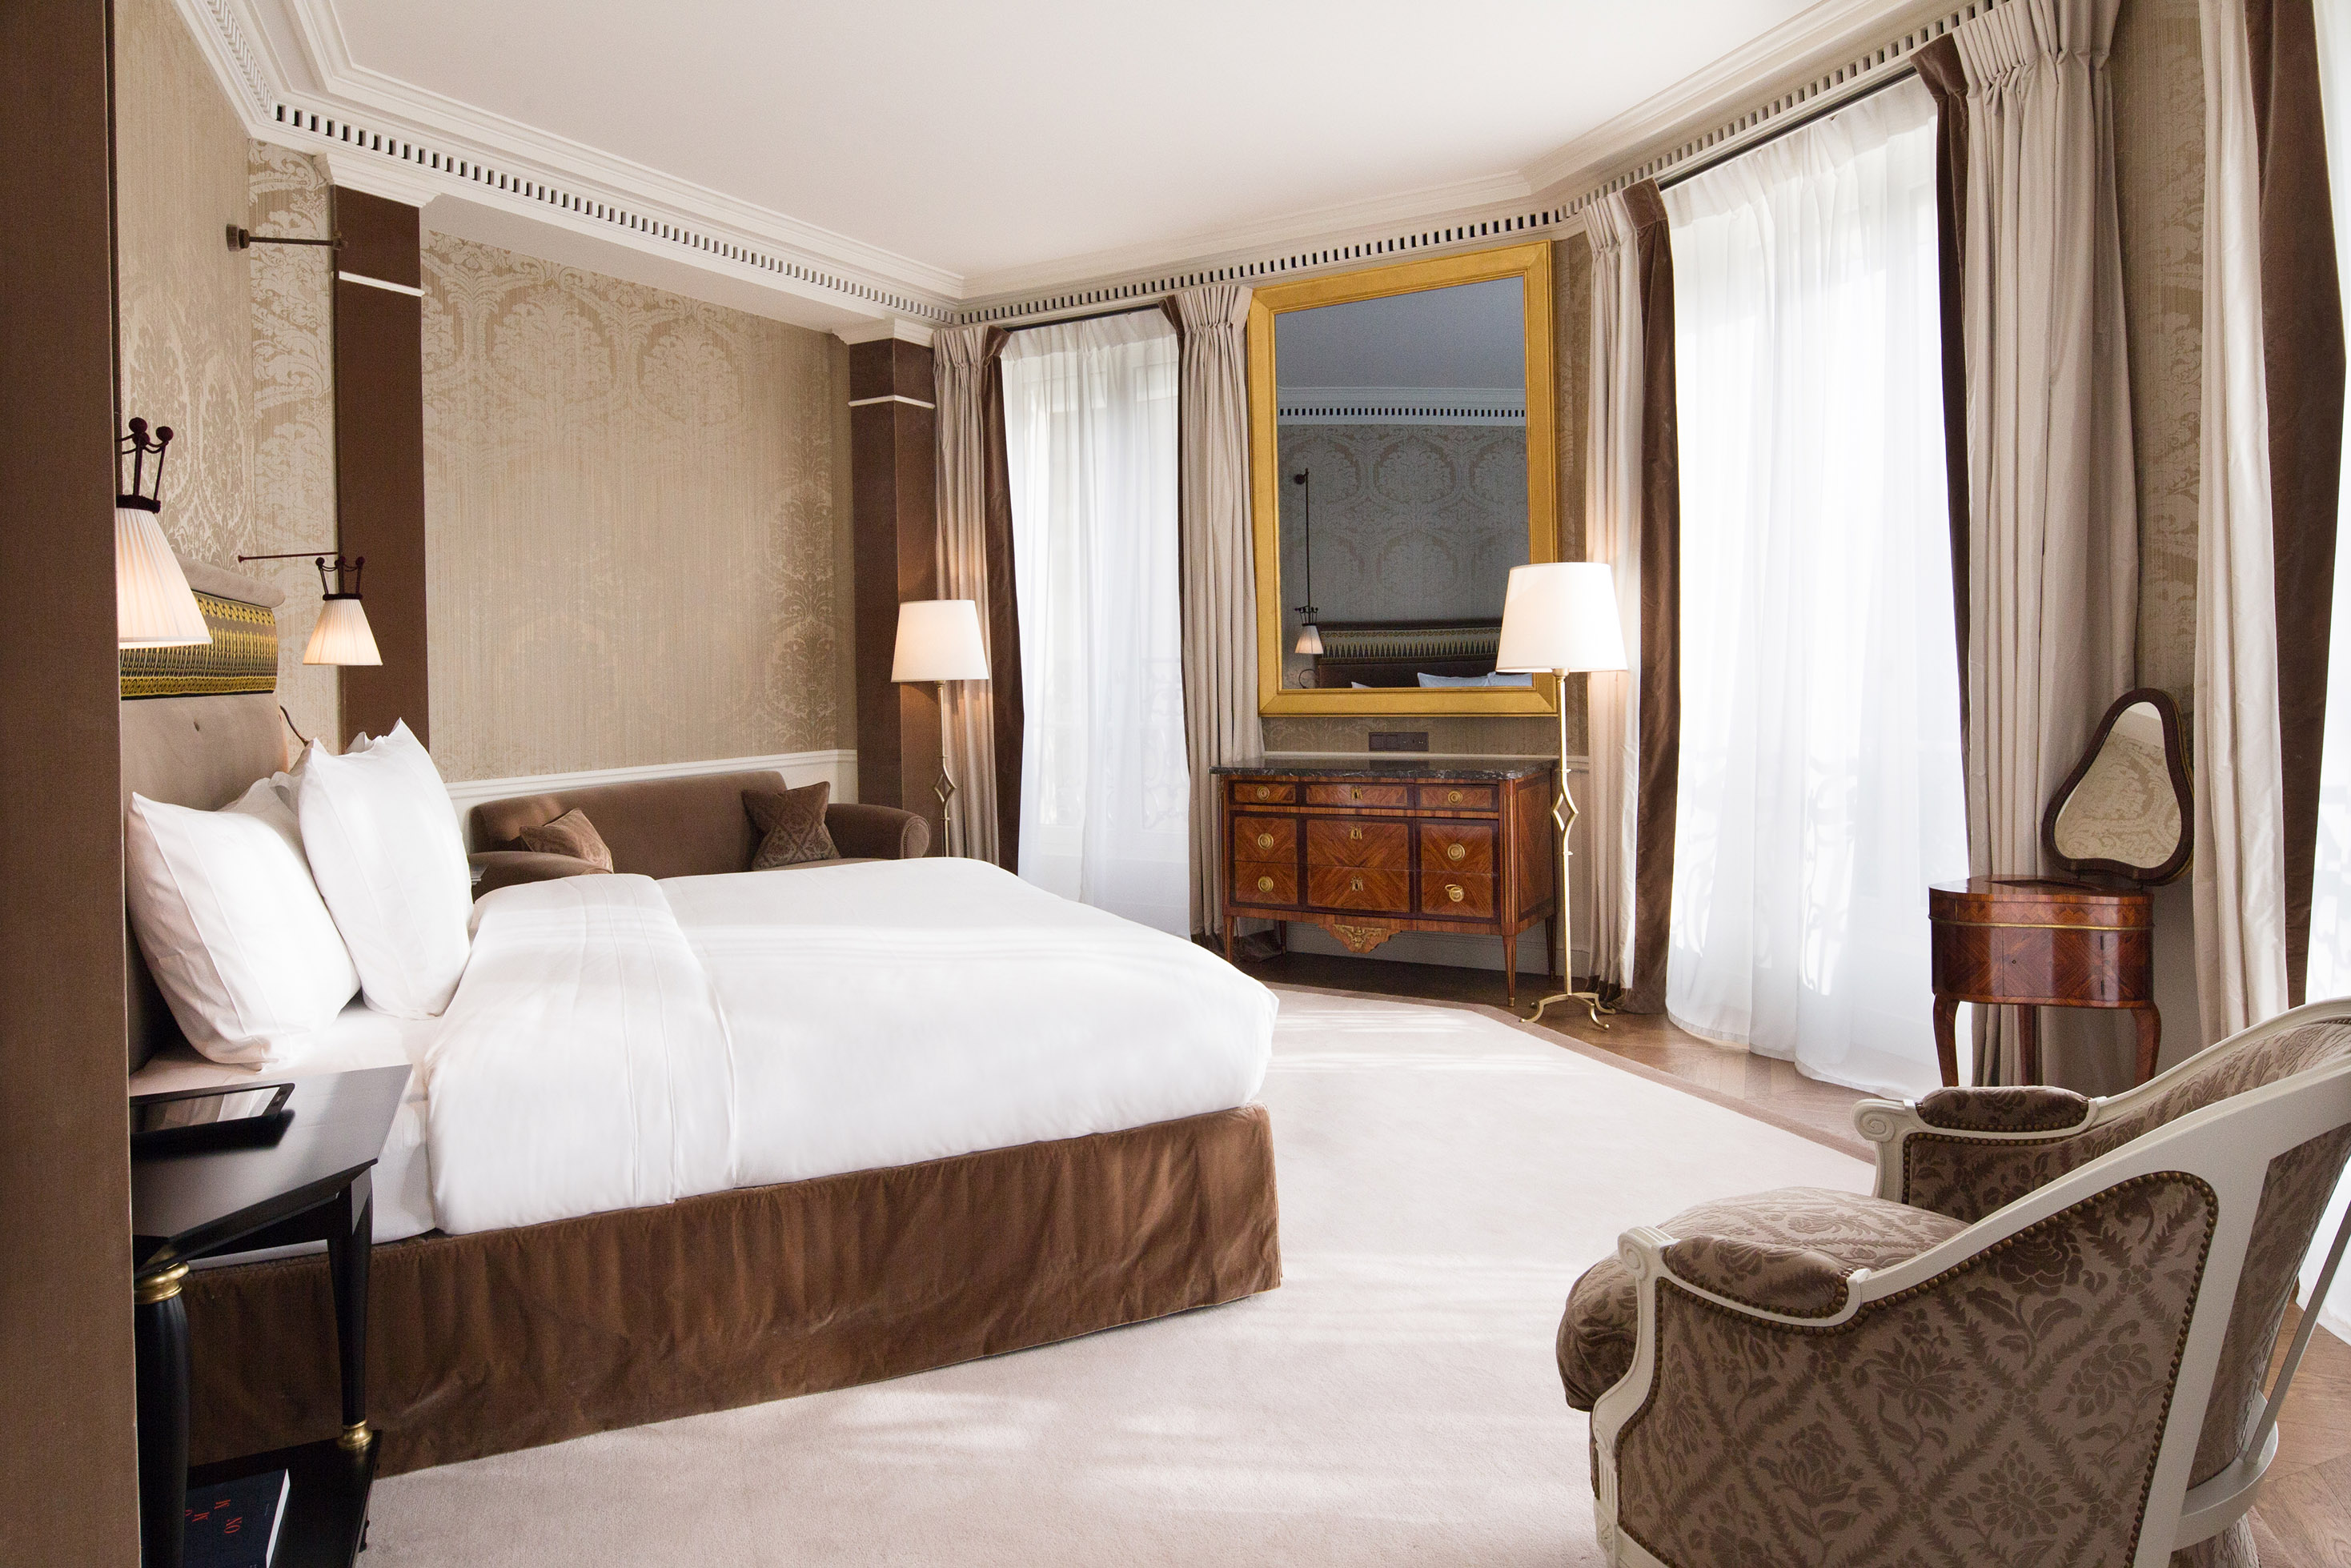 La r serve paris une grande maison sacr e palace firstluxe for Reserve une chambre